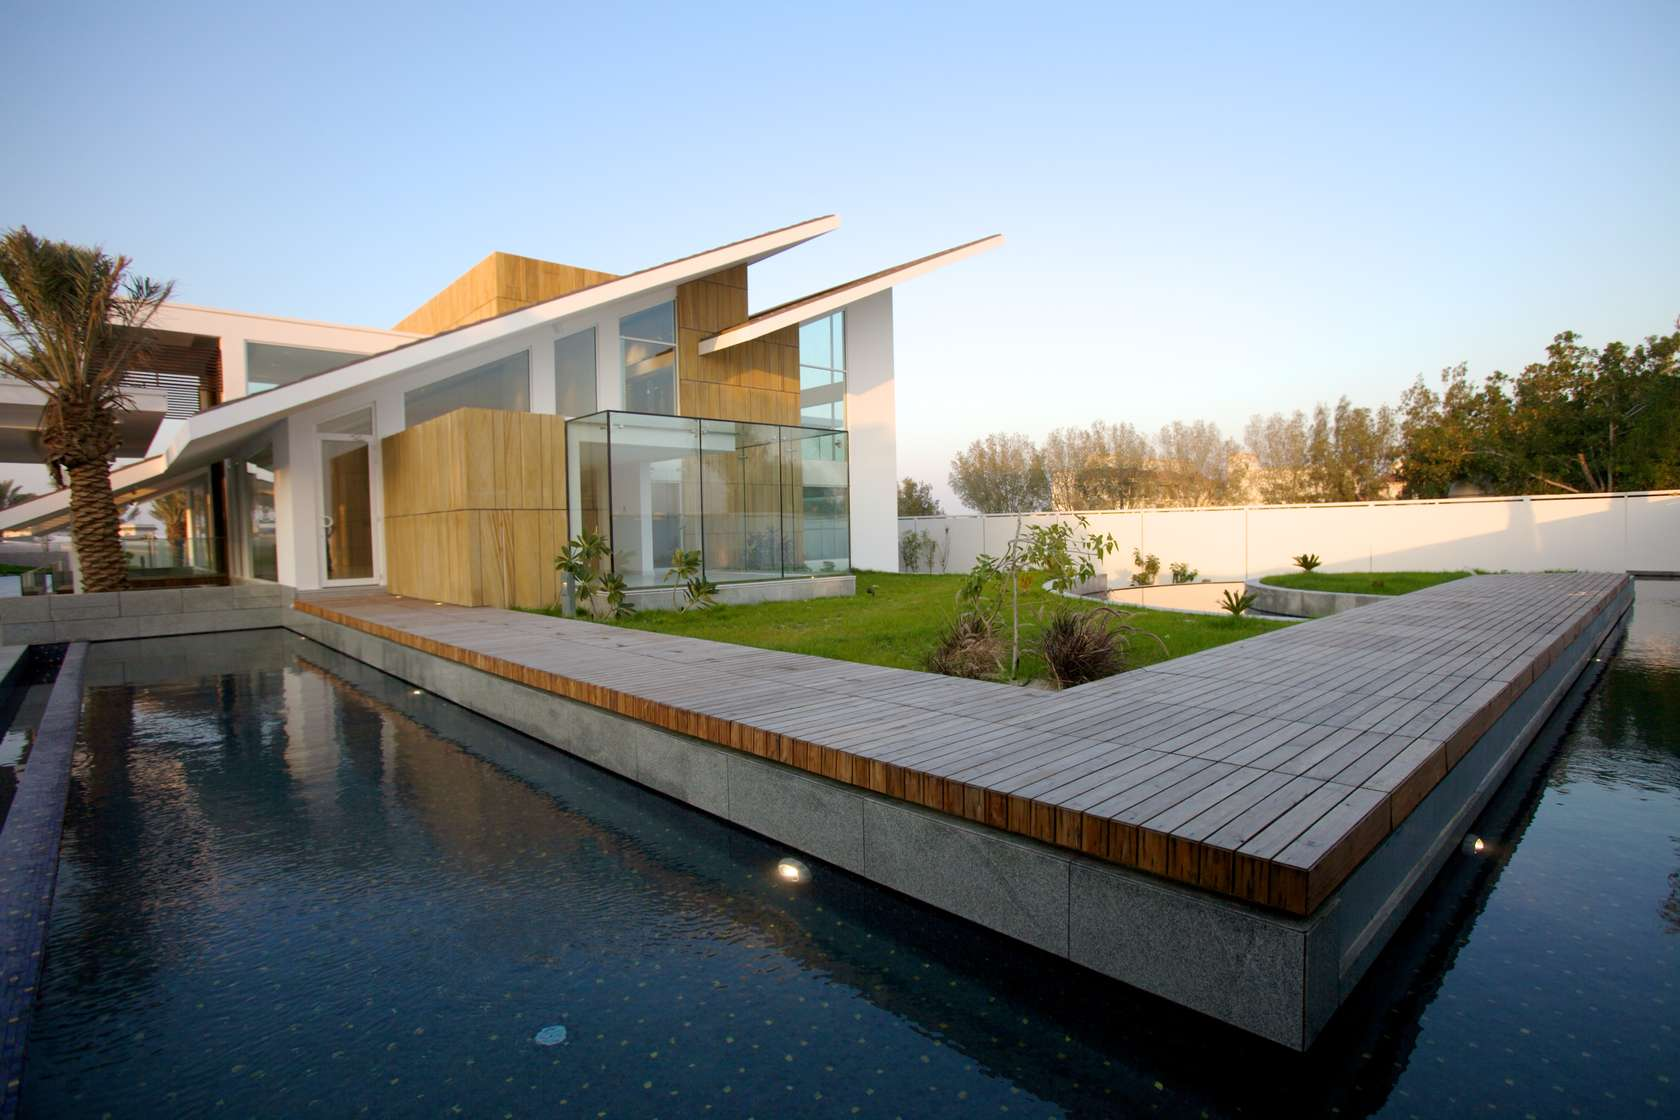 10 modern home designs to inspire bone structure